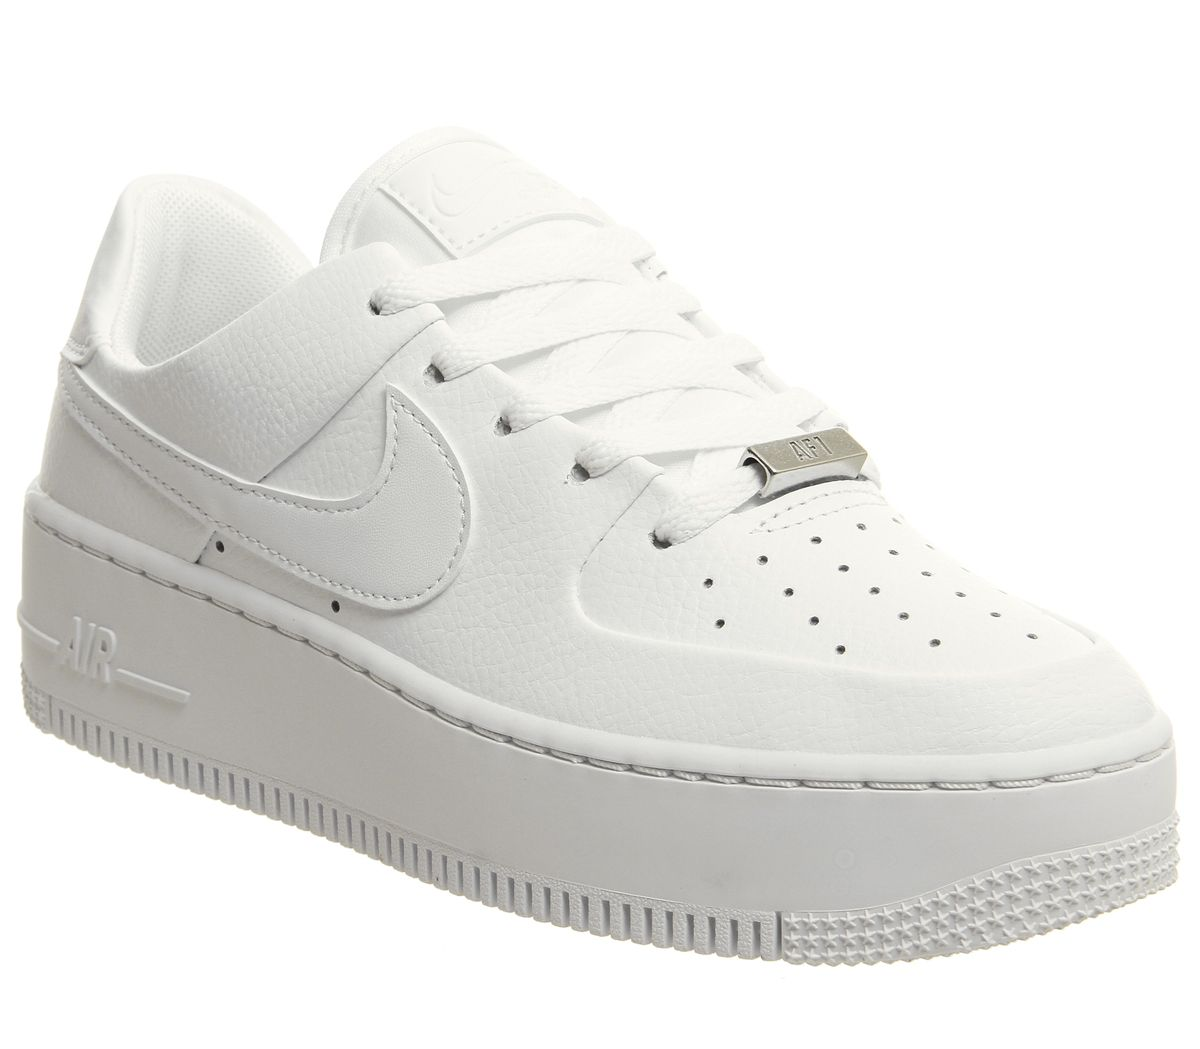 6d863cf6e8 Nike Air Force 1 Sage Trainers White - Hers trainers